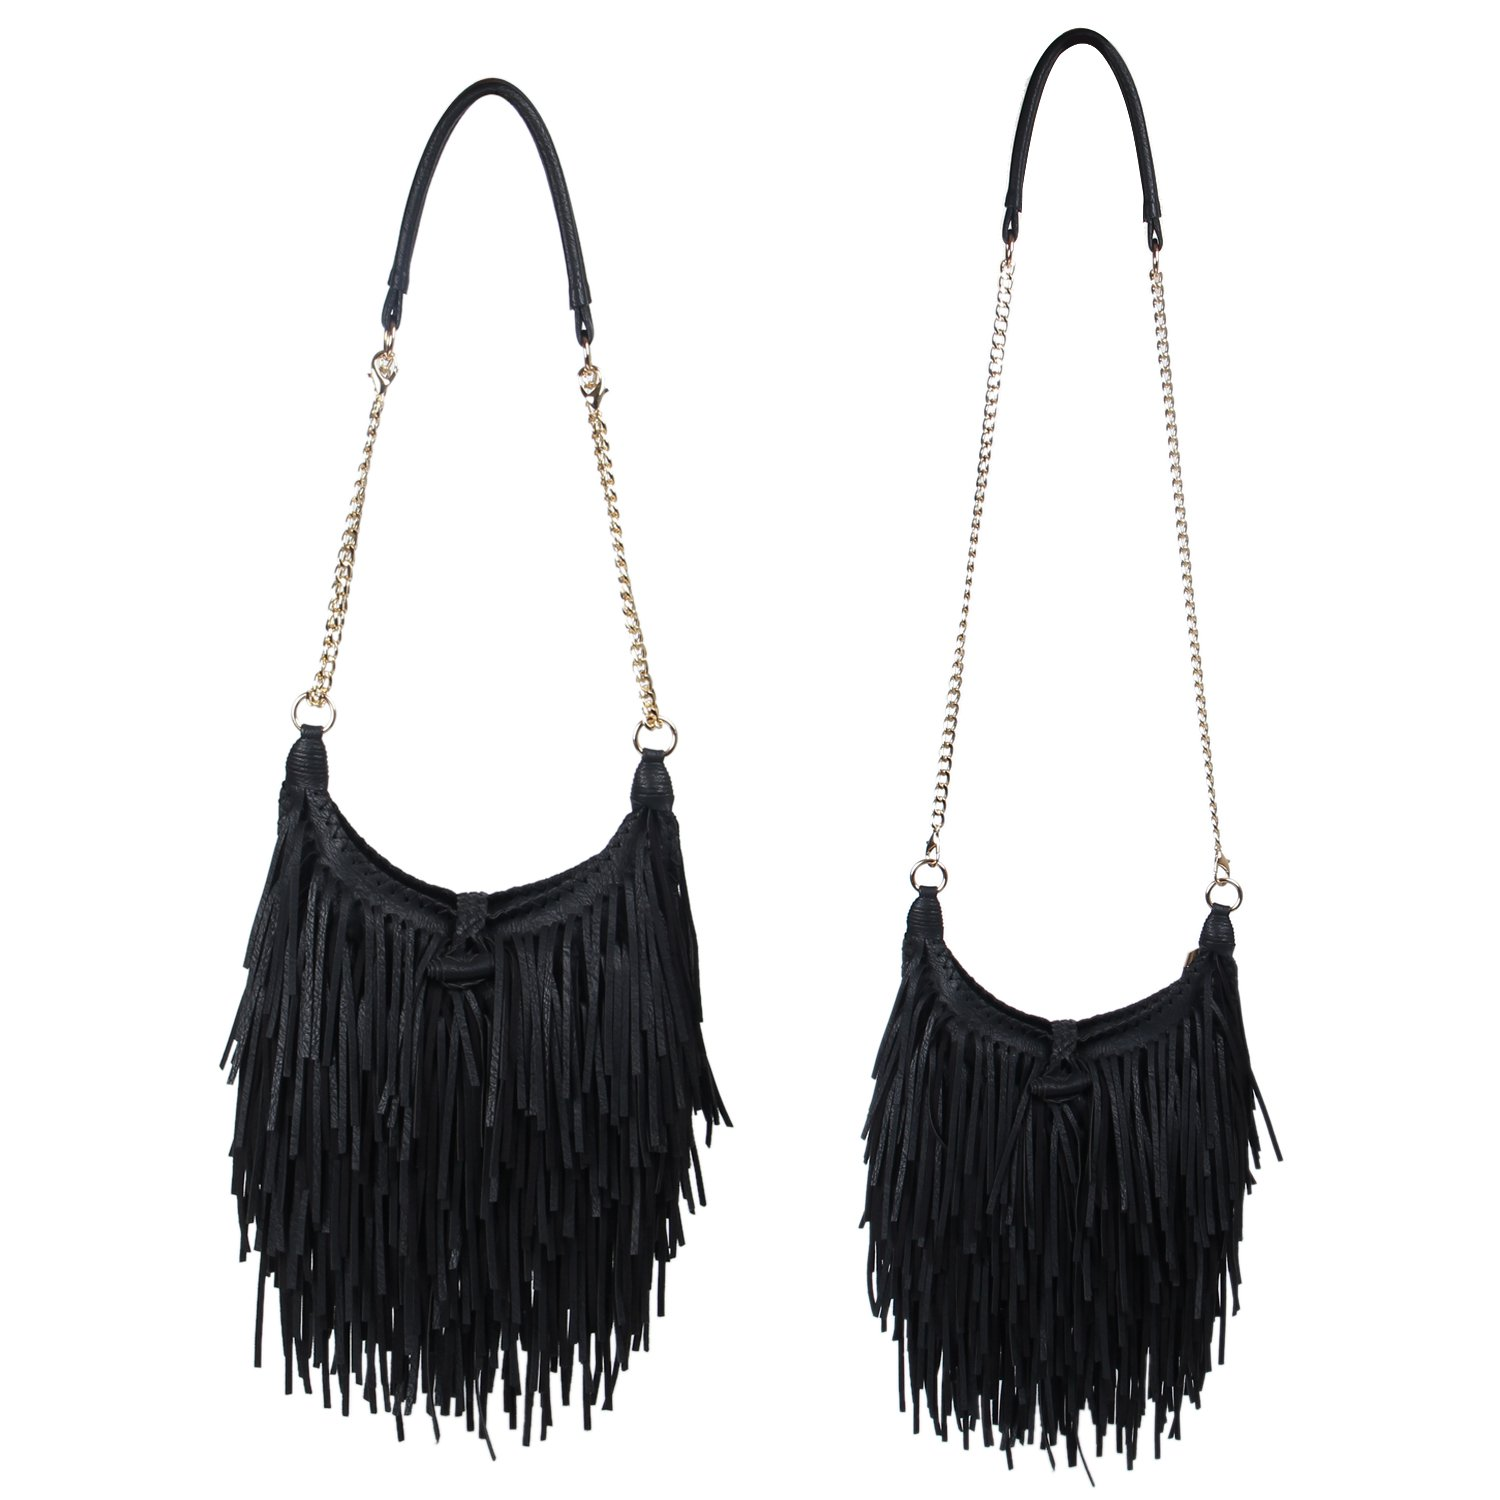 8599ed5fb753 LUI SUI Women's Fashion Fringed Shoulder Bag Tassel Cross Body Bags